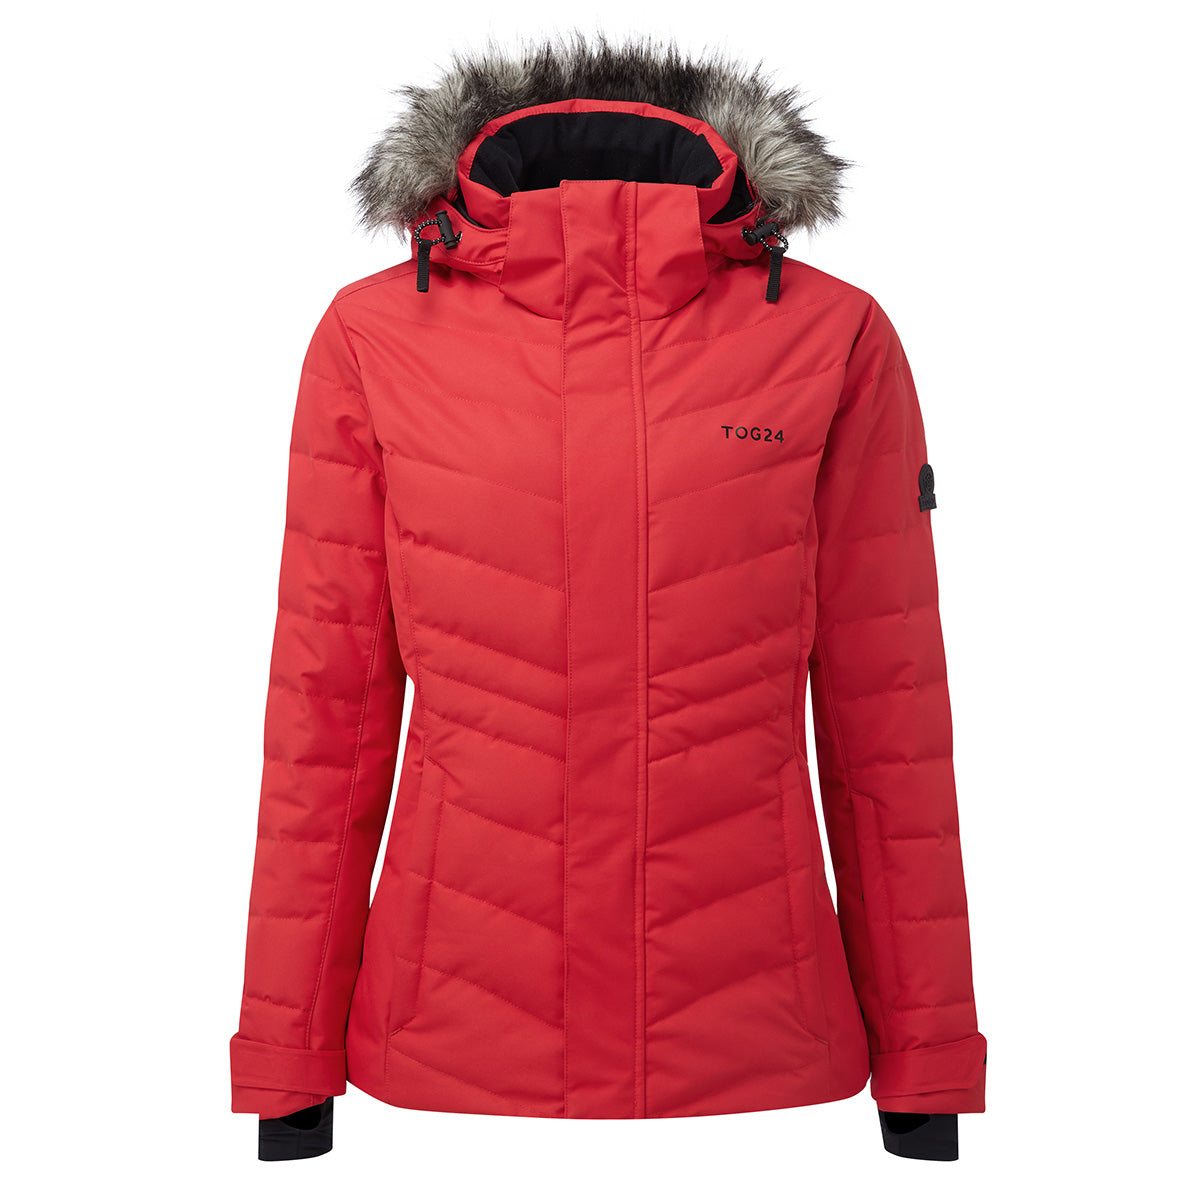 Kirby Womens Down Filled Ski Jacket - Rouge Red image 4